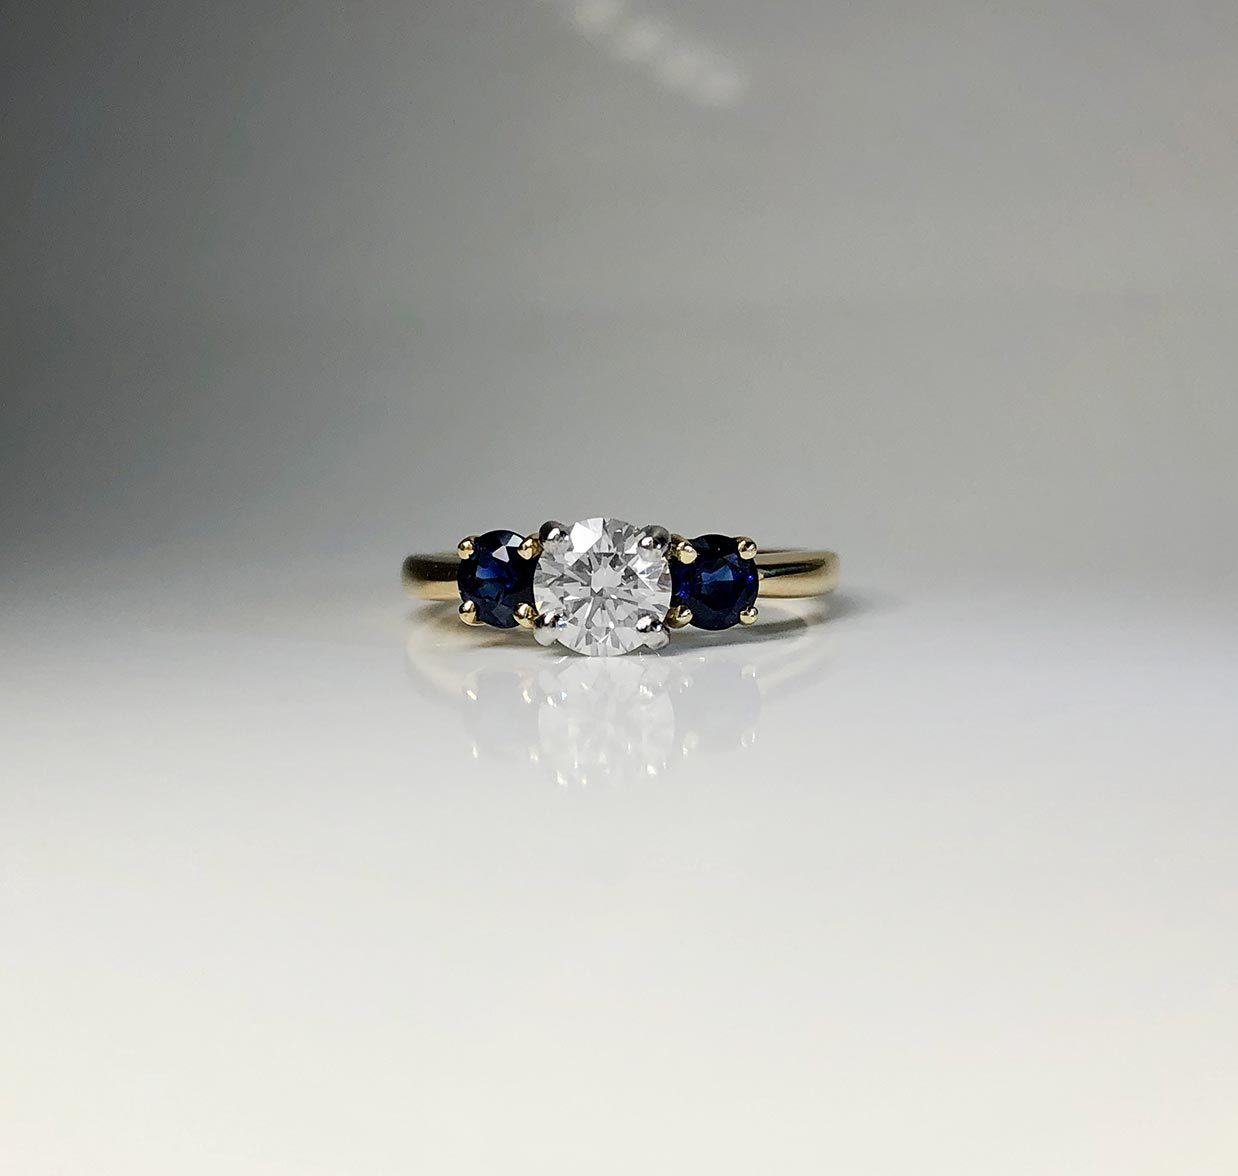 18K Yellow Gold Platinum Prong 0.56ct Diamond Sapphires Ring Size 6 I-12954